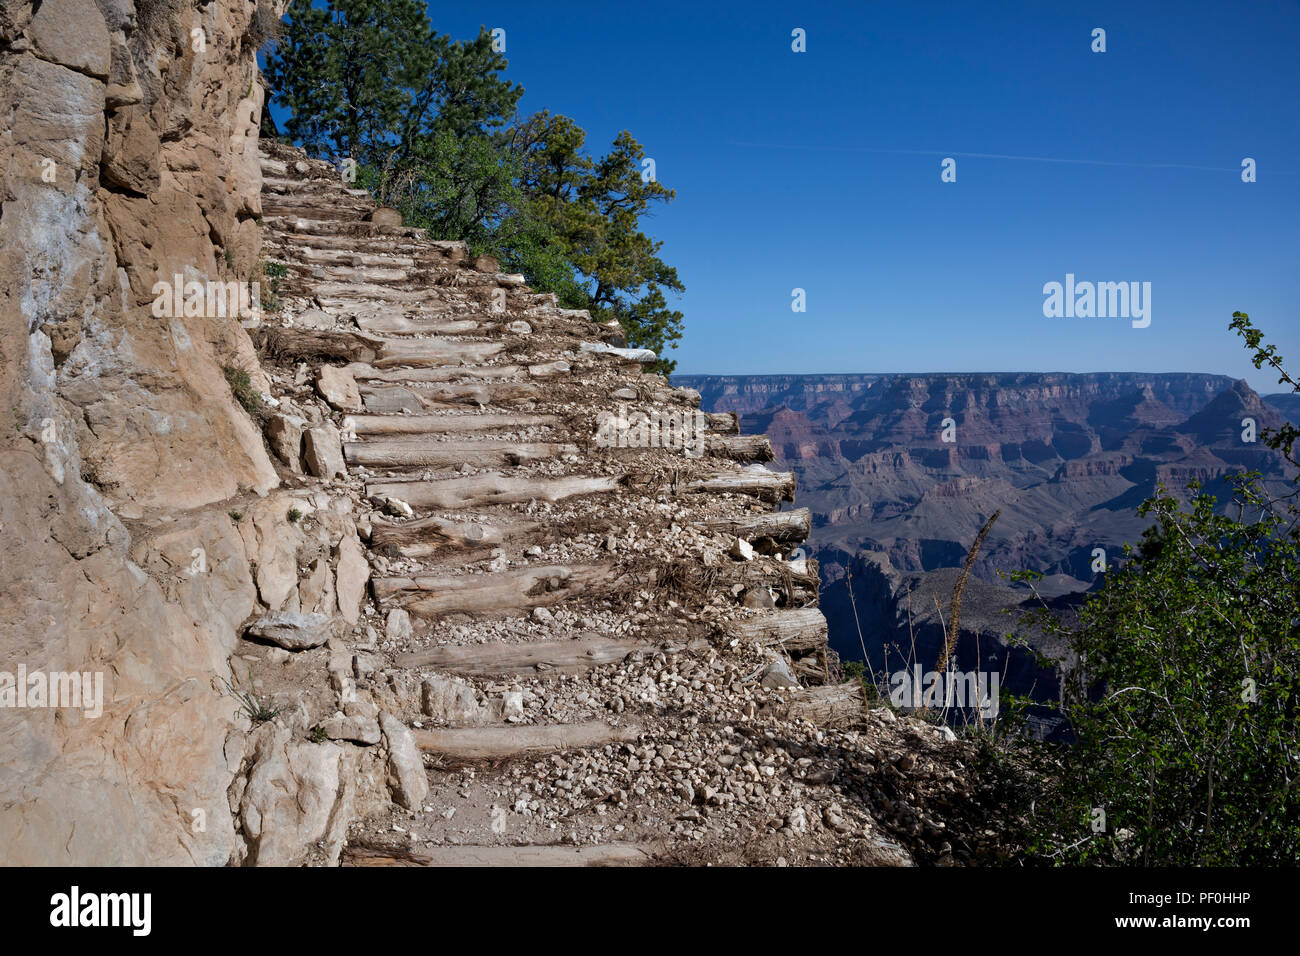 AZ00312-00...ARIZONA - The GrandView Trail along the edge of the steep cliff in Grand Canyon National Park. - Stock Image